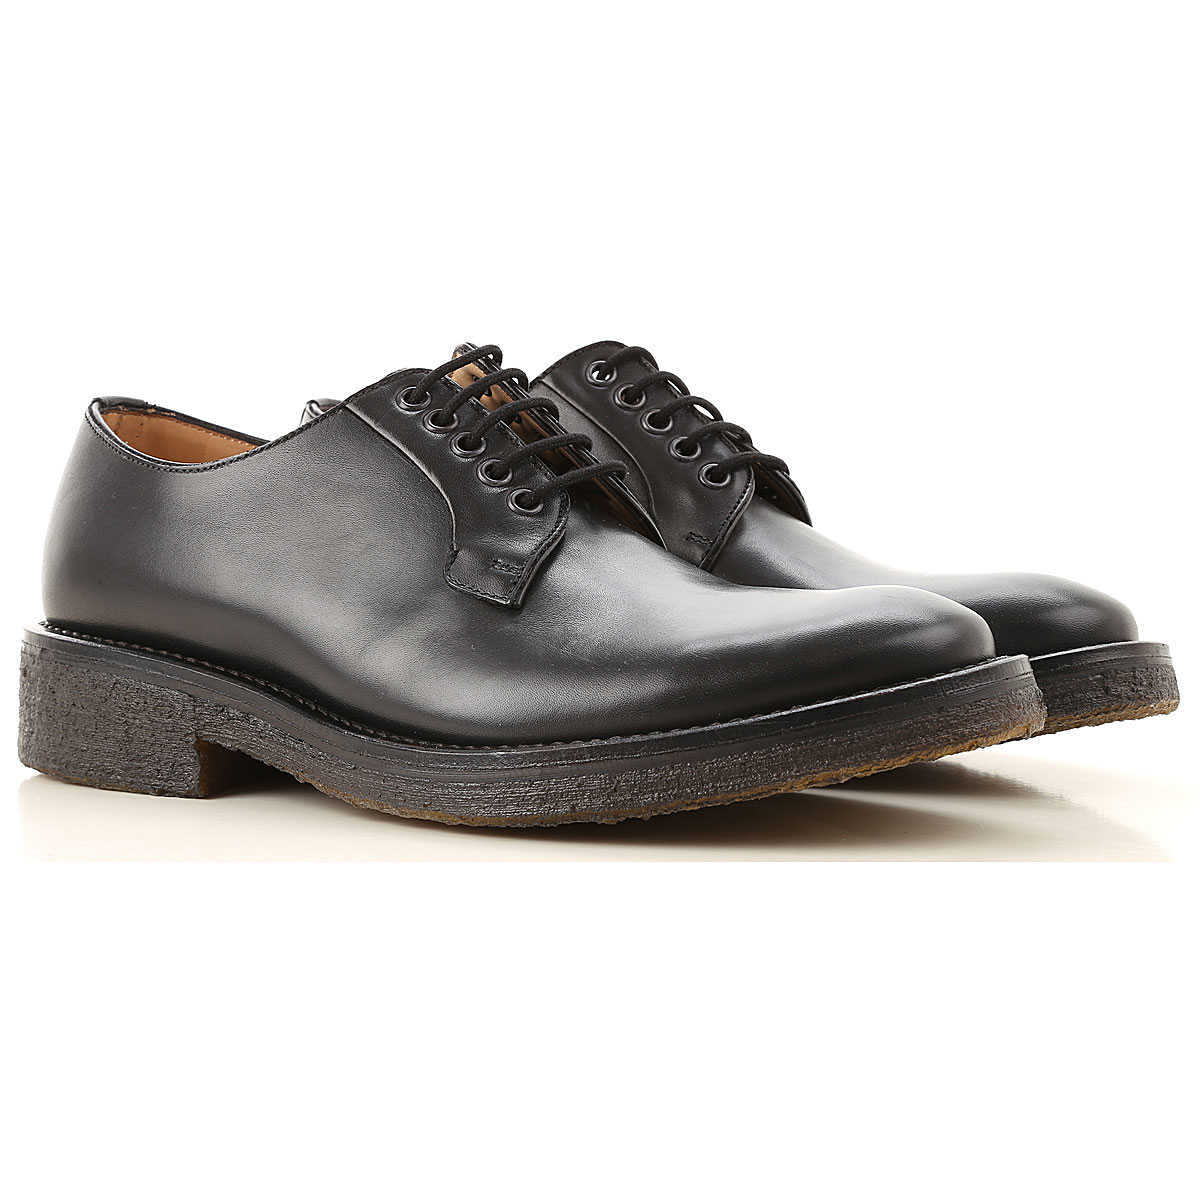 Seboys Lace Up Shoes for Men Oxfords Derbies and Brogues Canada - GOOFASH - Mens FORMAL SHOES